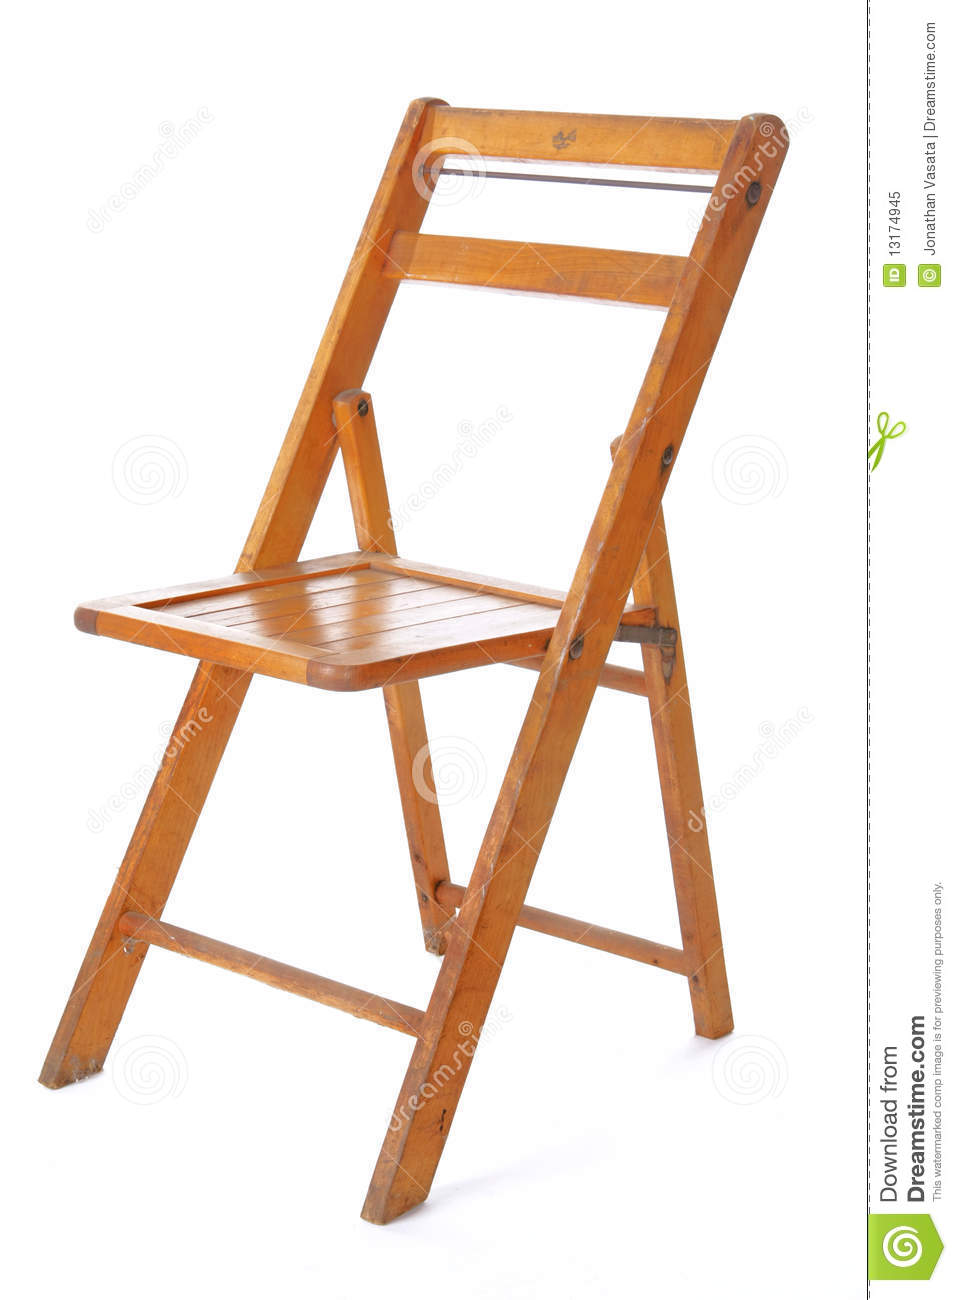 Retro Wooden Folding Chair Royalty Free Stock Photo